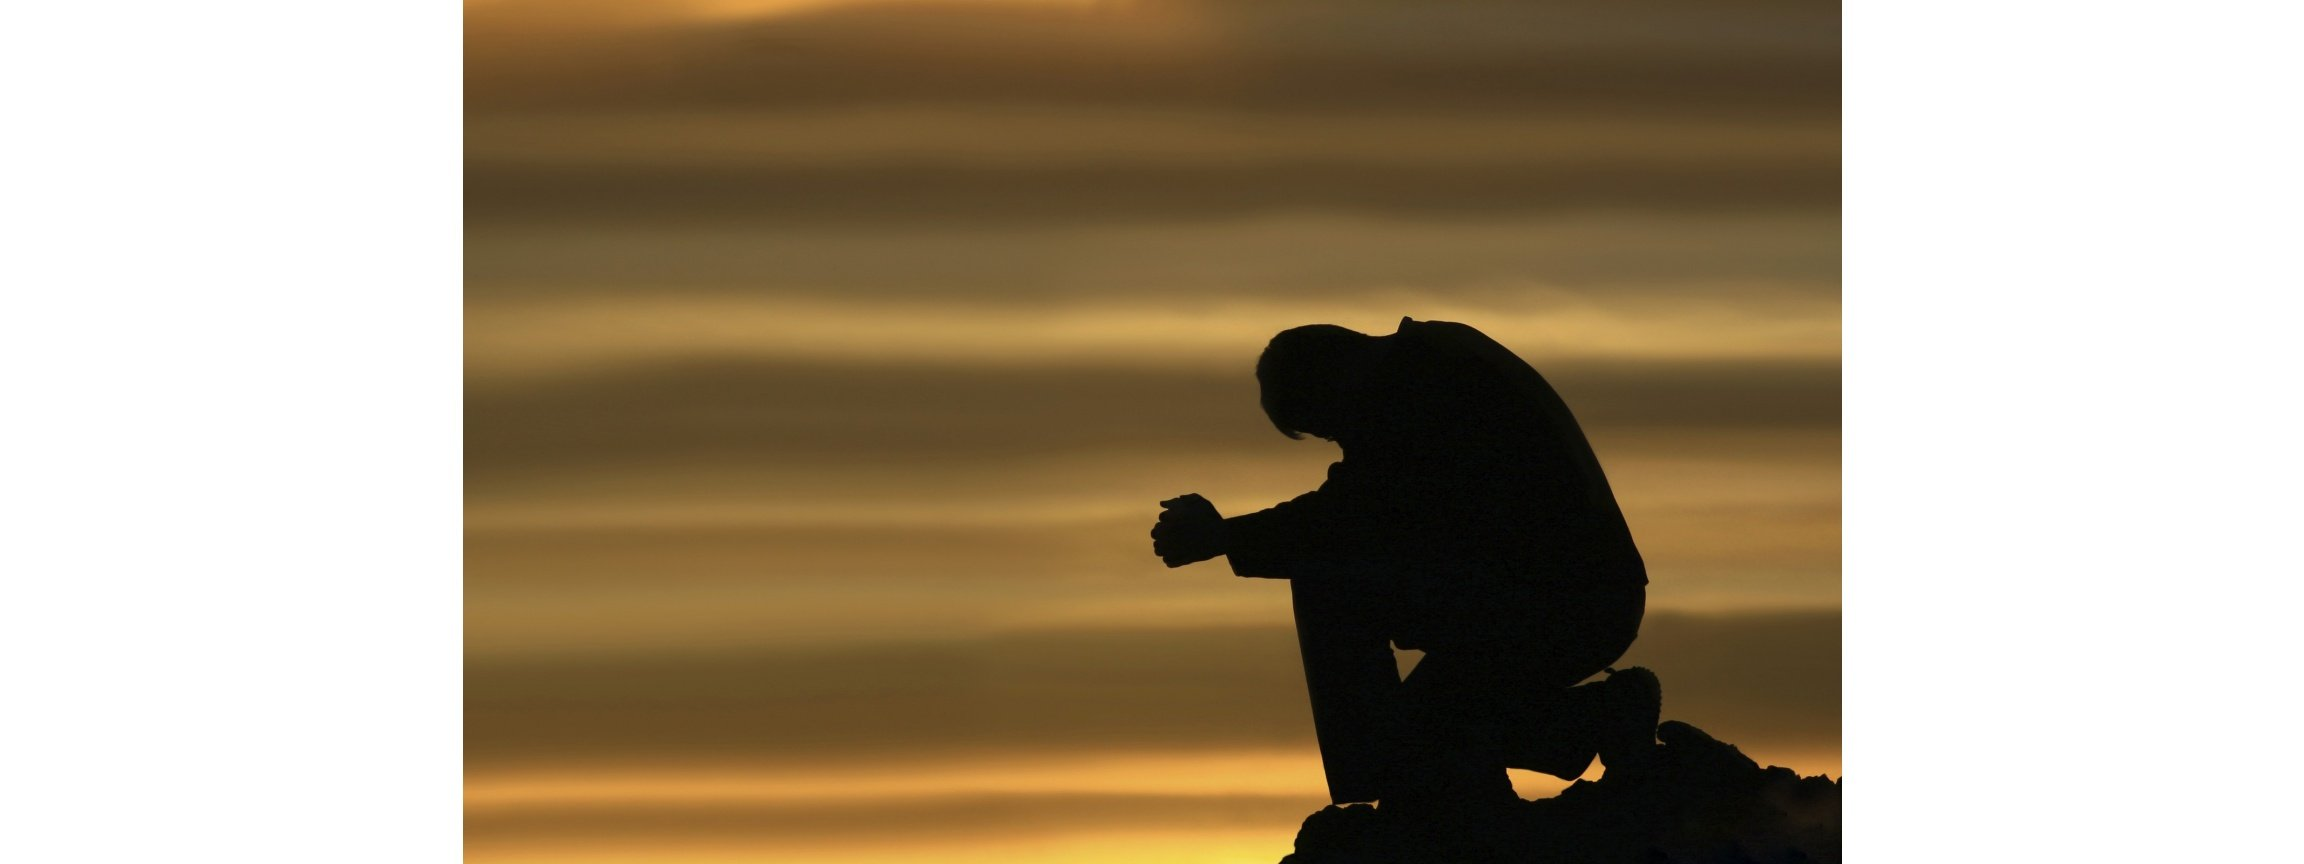 Selected Resoloution 2304x864 Sad Guy Size 176282 Download Close 2304x864